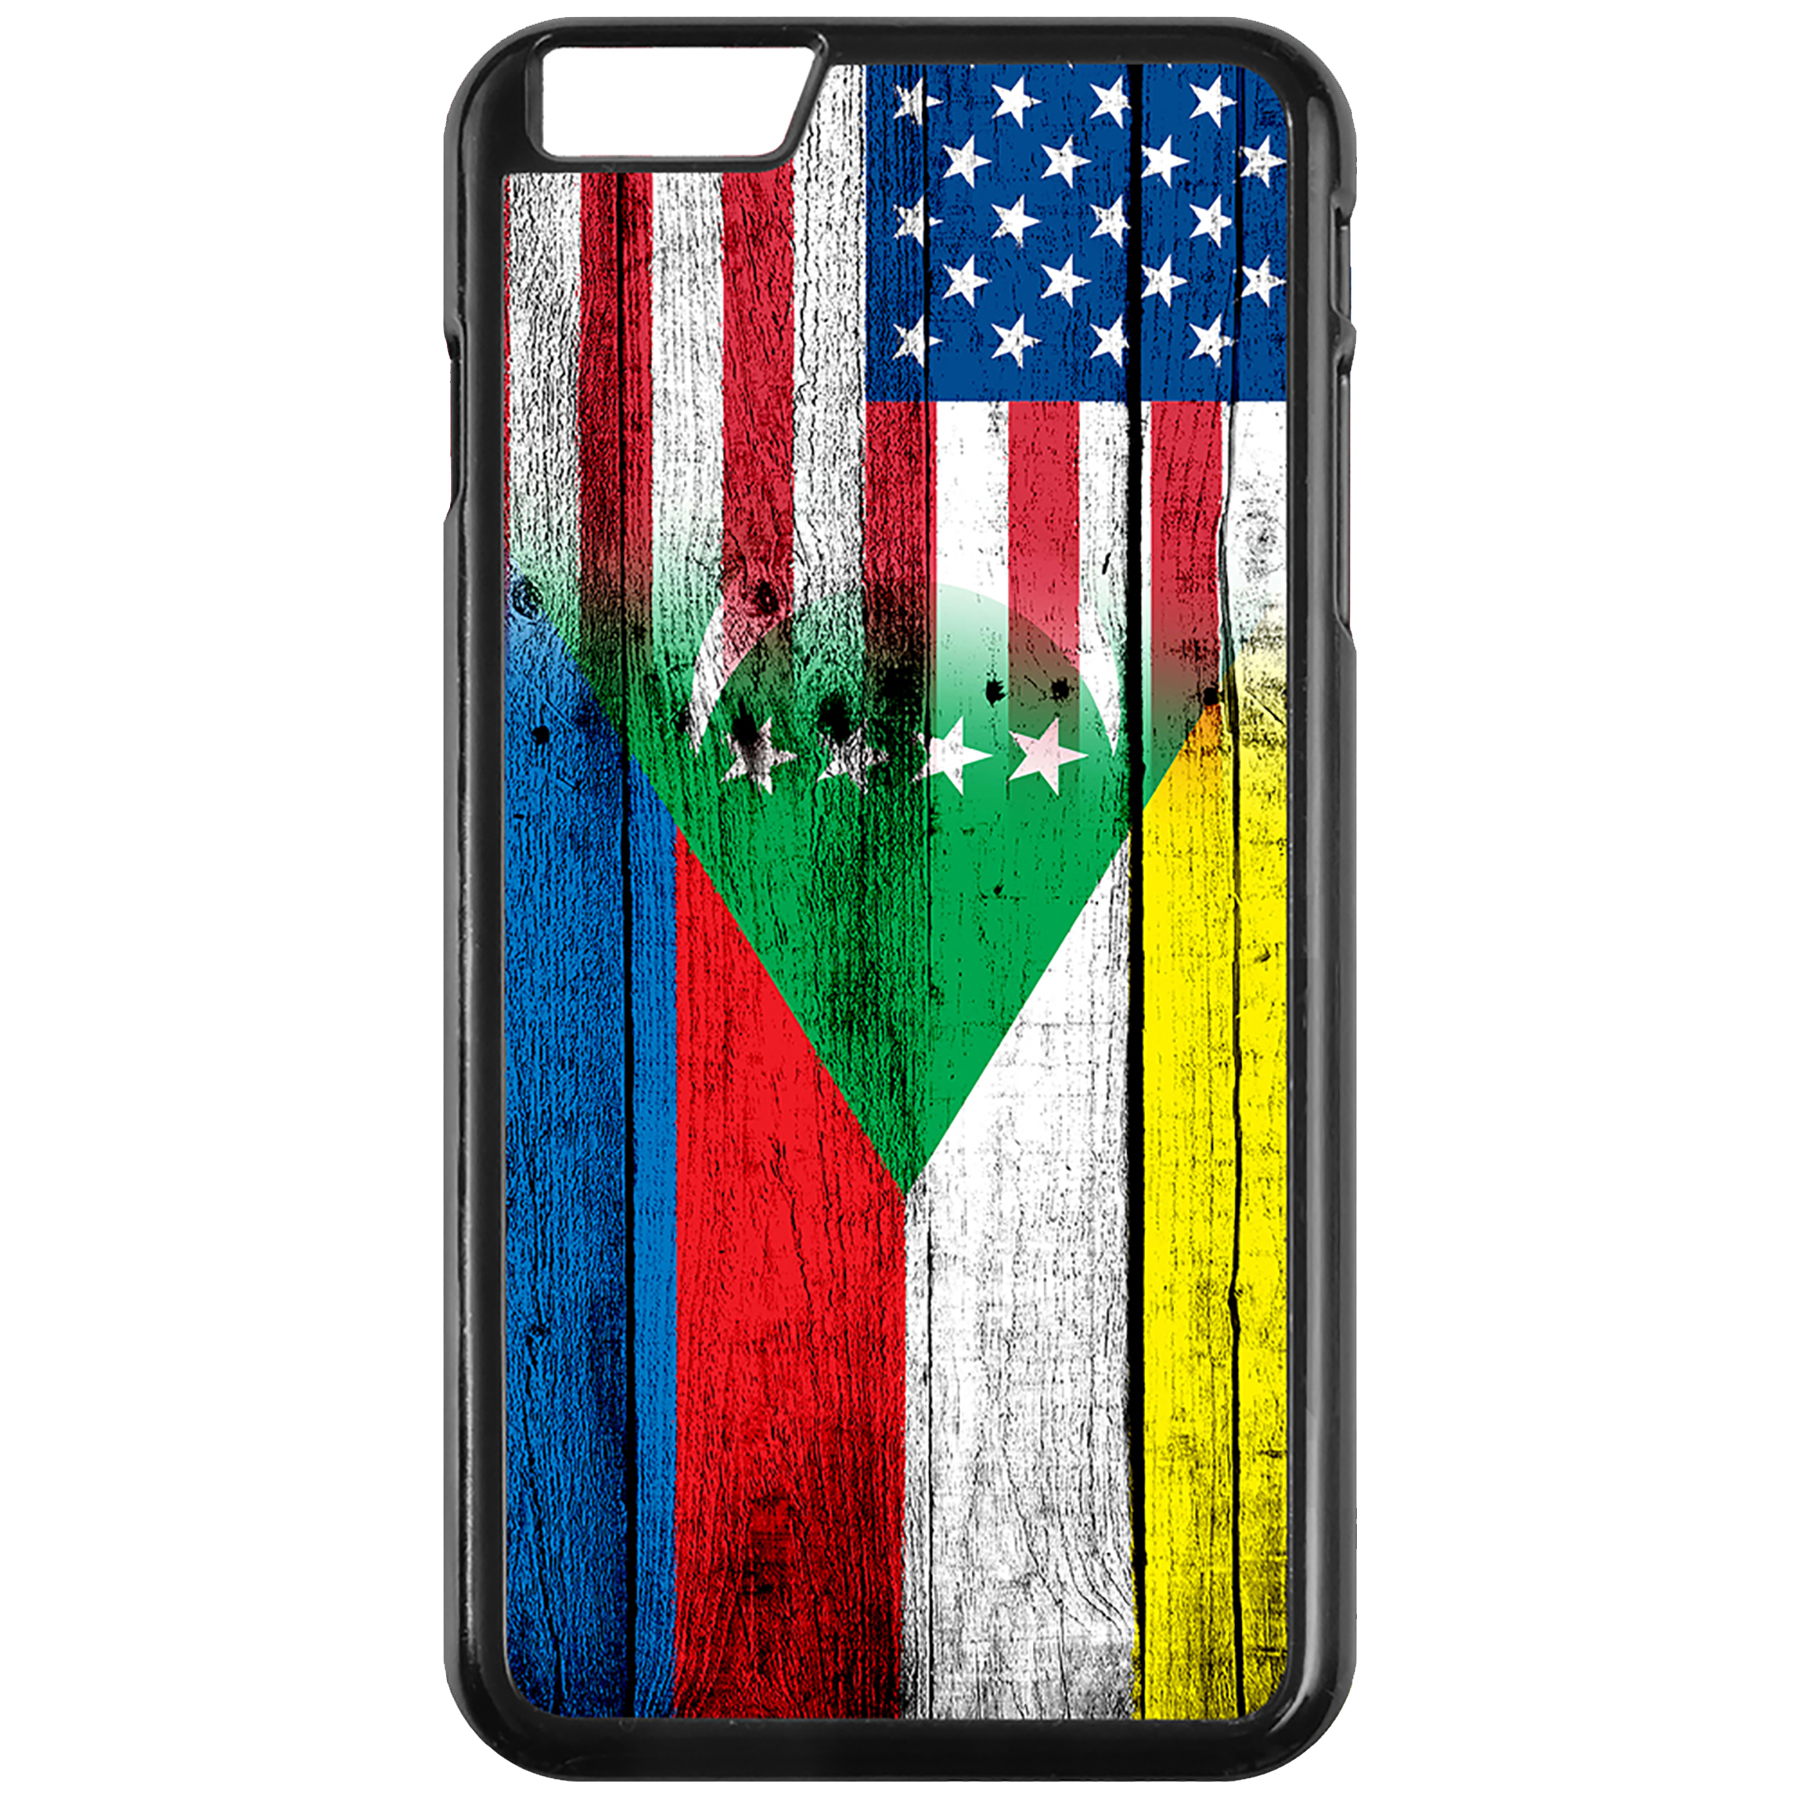 Apple-iPhone-Case-with-Flag-of-Comoros-Comorian-Many-Design-Options thumbnail 22